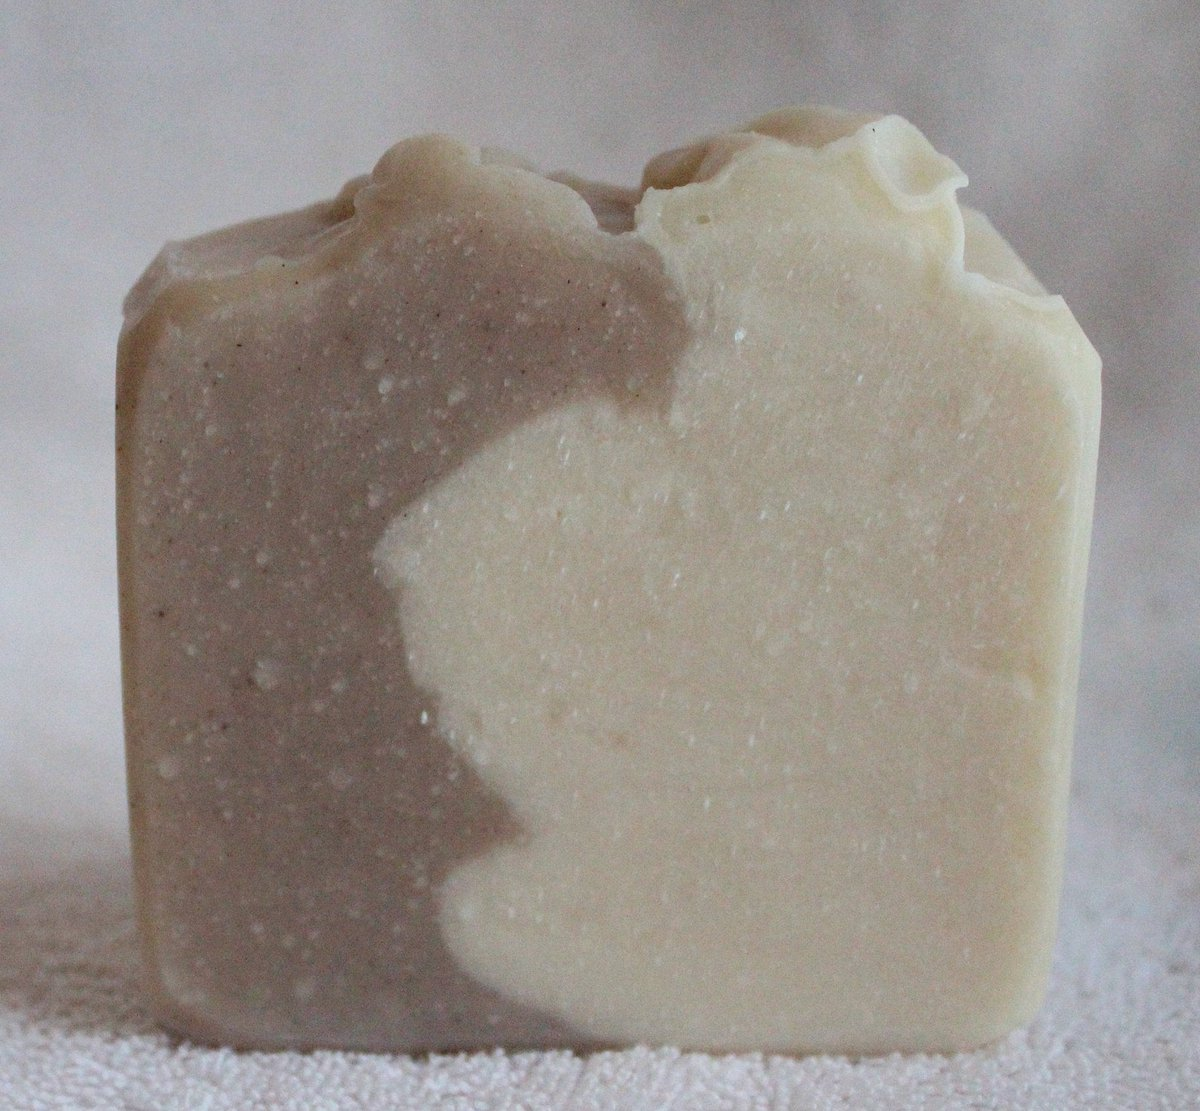 Raspberry Lemonade Soap, Handcrafted Beauty Product, Bar Soap, Cocoa Butter, Cleanser, Food Scented Soap, Bath Product, Popular Spring Scent http://tuppu.net/e77c3a9a ##Handwashing #ecofriendly #facialcare #allnatural ##WashYourHands #BarSoap pic.twitter.com/HtRMkSekoT